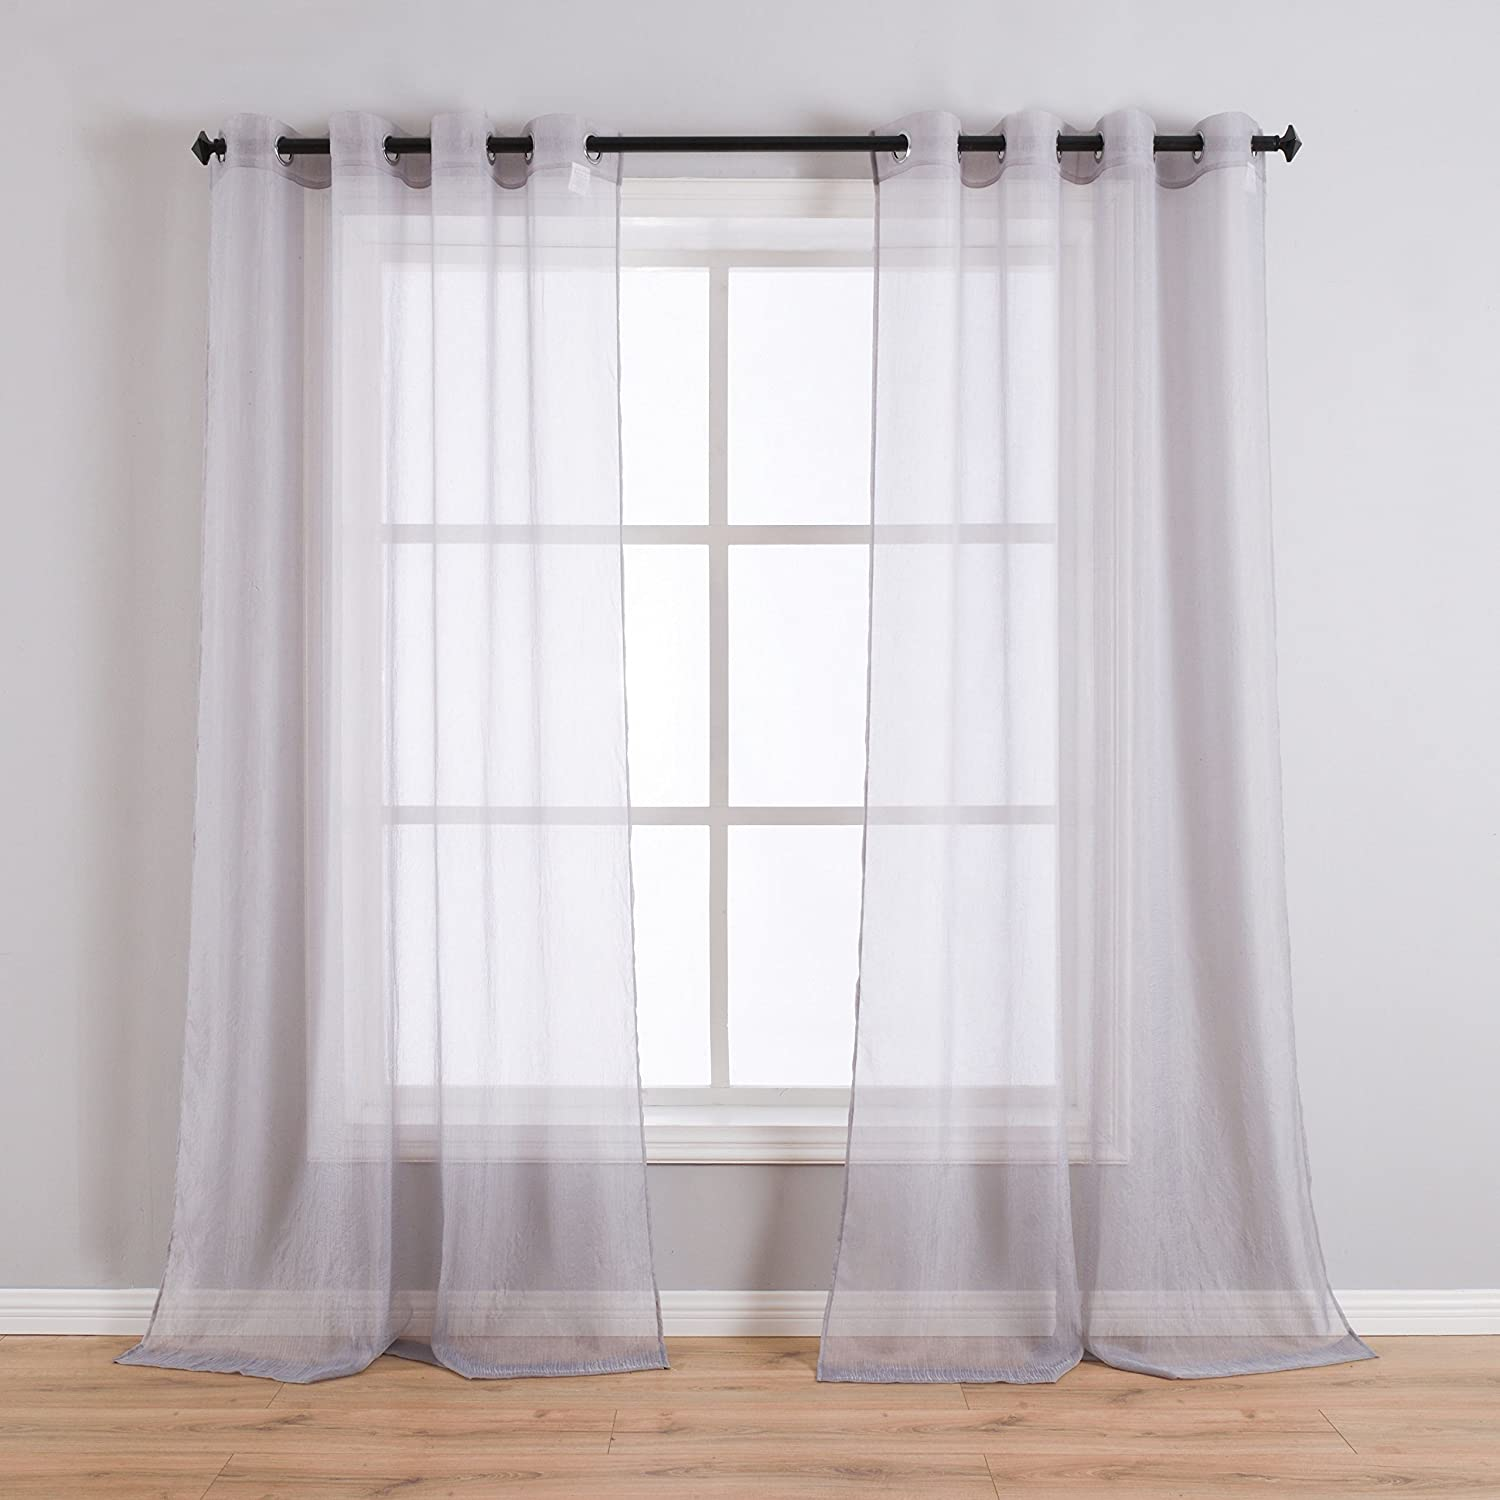 Taisier Home Beige Sheer Curtains Linen Look Semi Transparent Voile Grommet Curtains for Living Room Drapes 52 inch Wide × 84 inch Long,Set of 2 Panels Crushed Sheer Voile Drapes